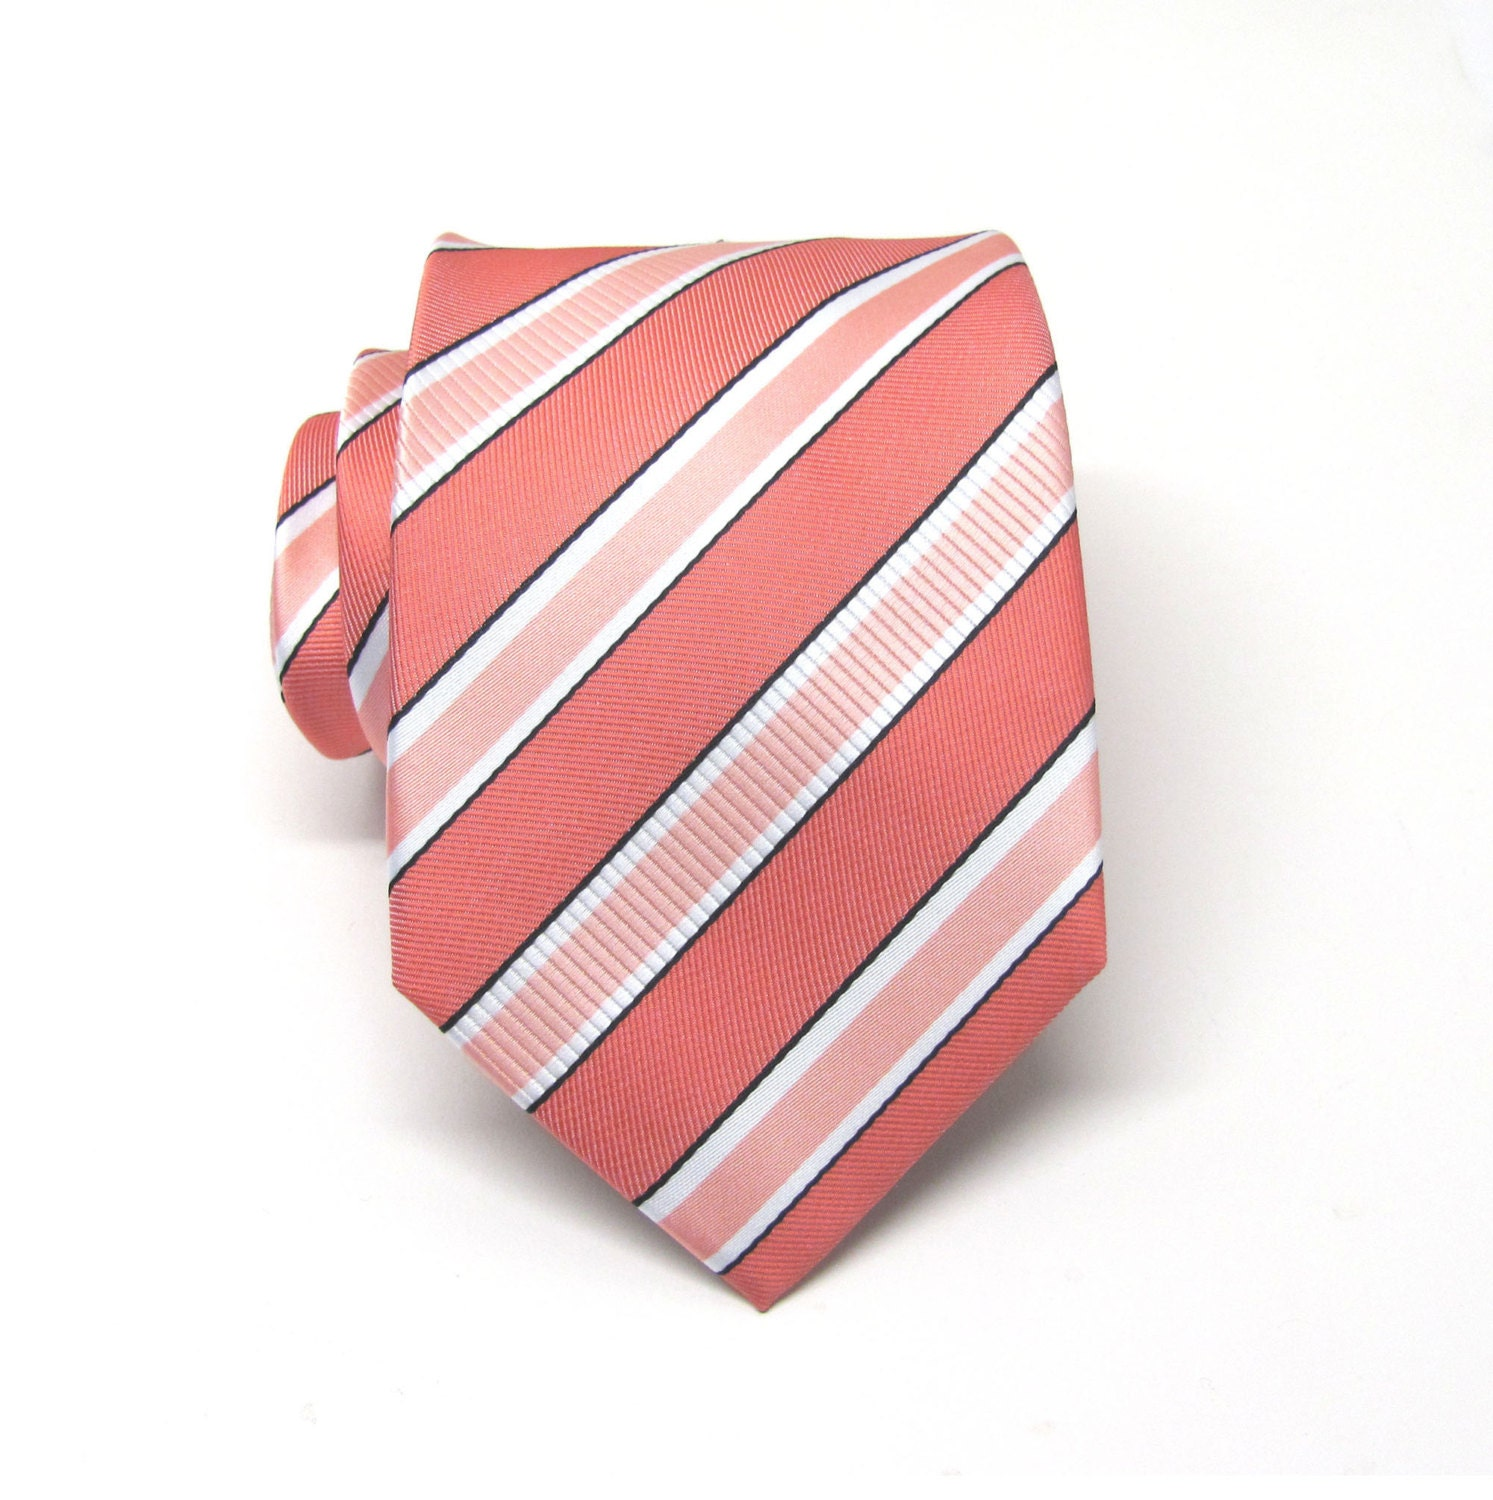 Coral Ties. Mens Ties Coral Peach White Stripes Necktie With